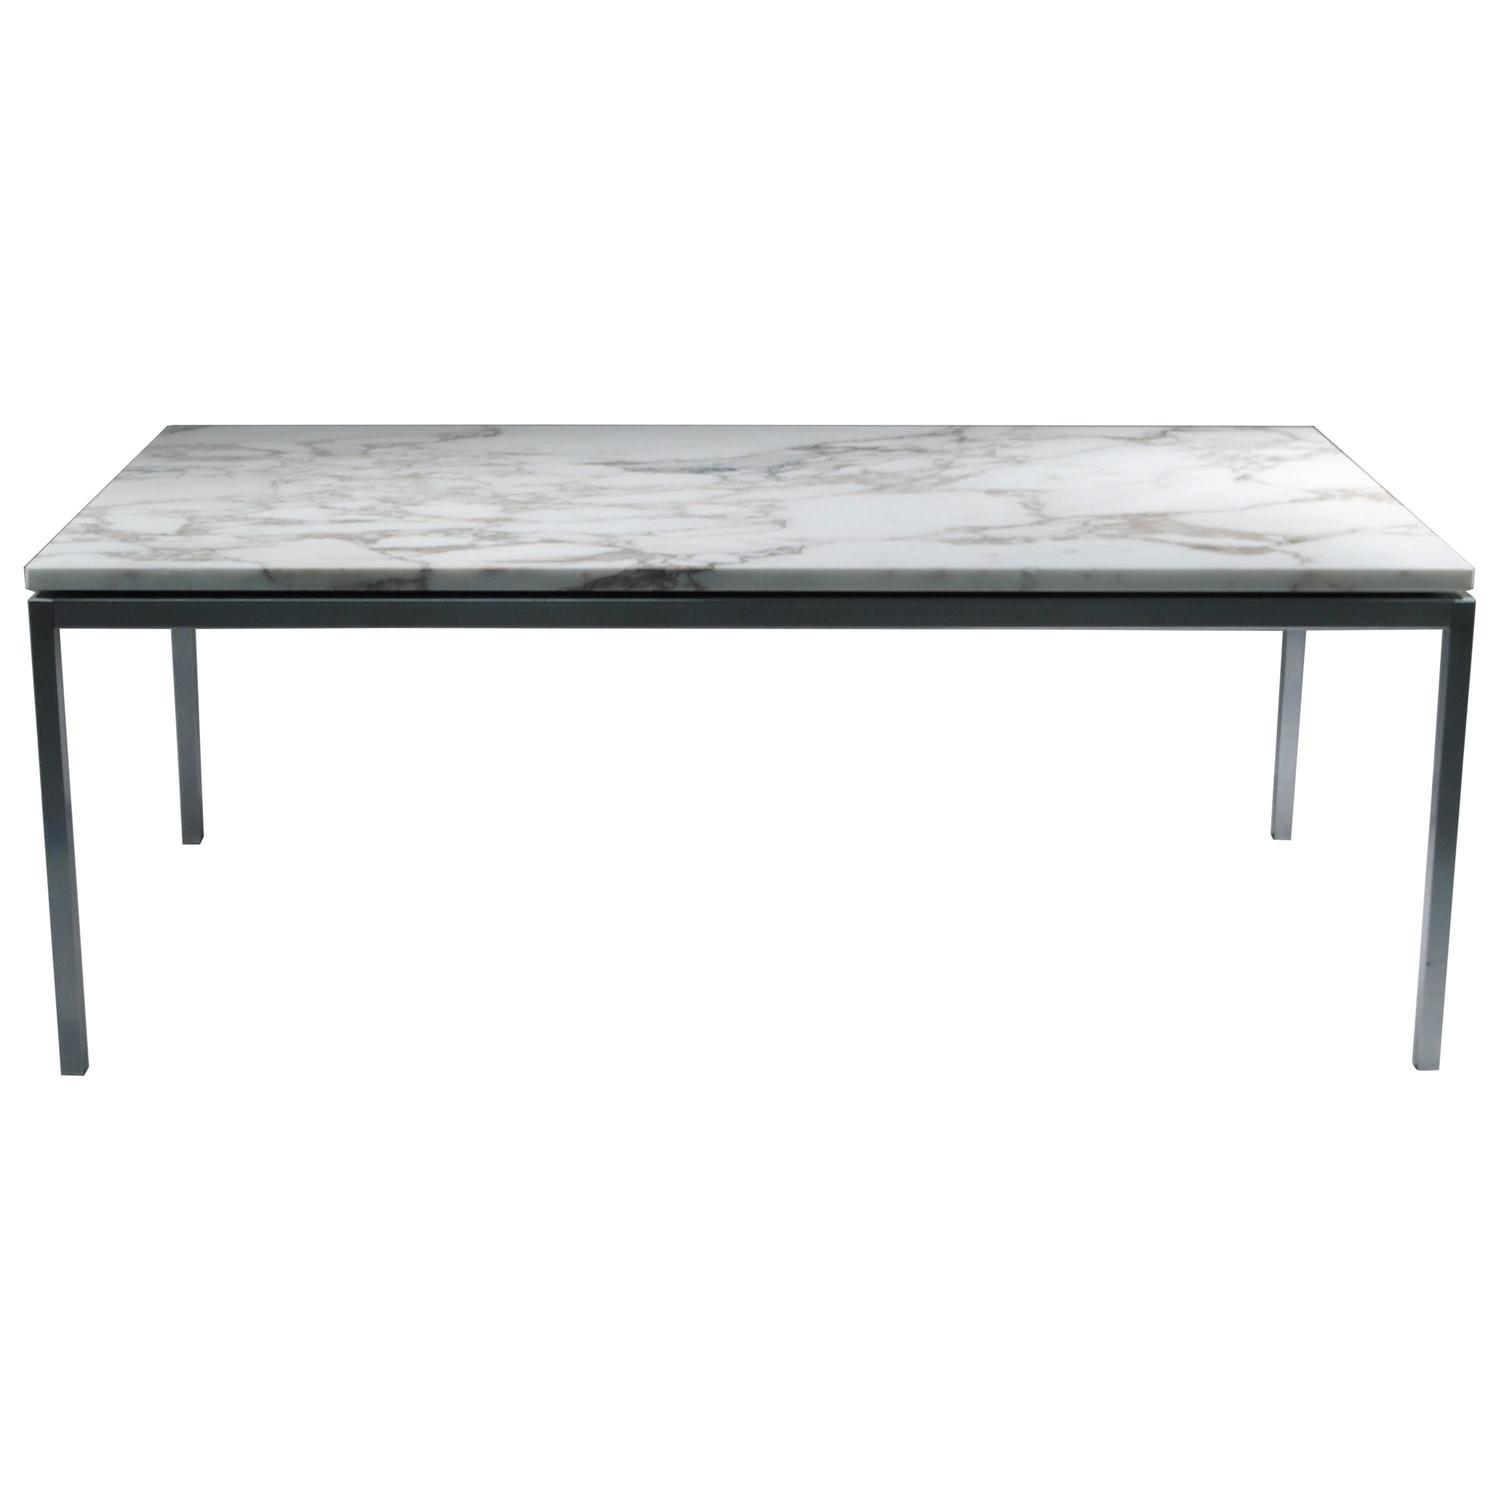 Florence Knoll Marble Top Coffee Table At 1stdibs